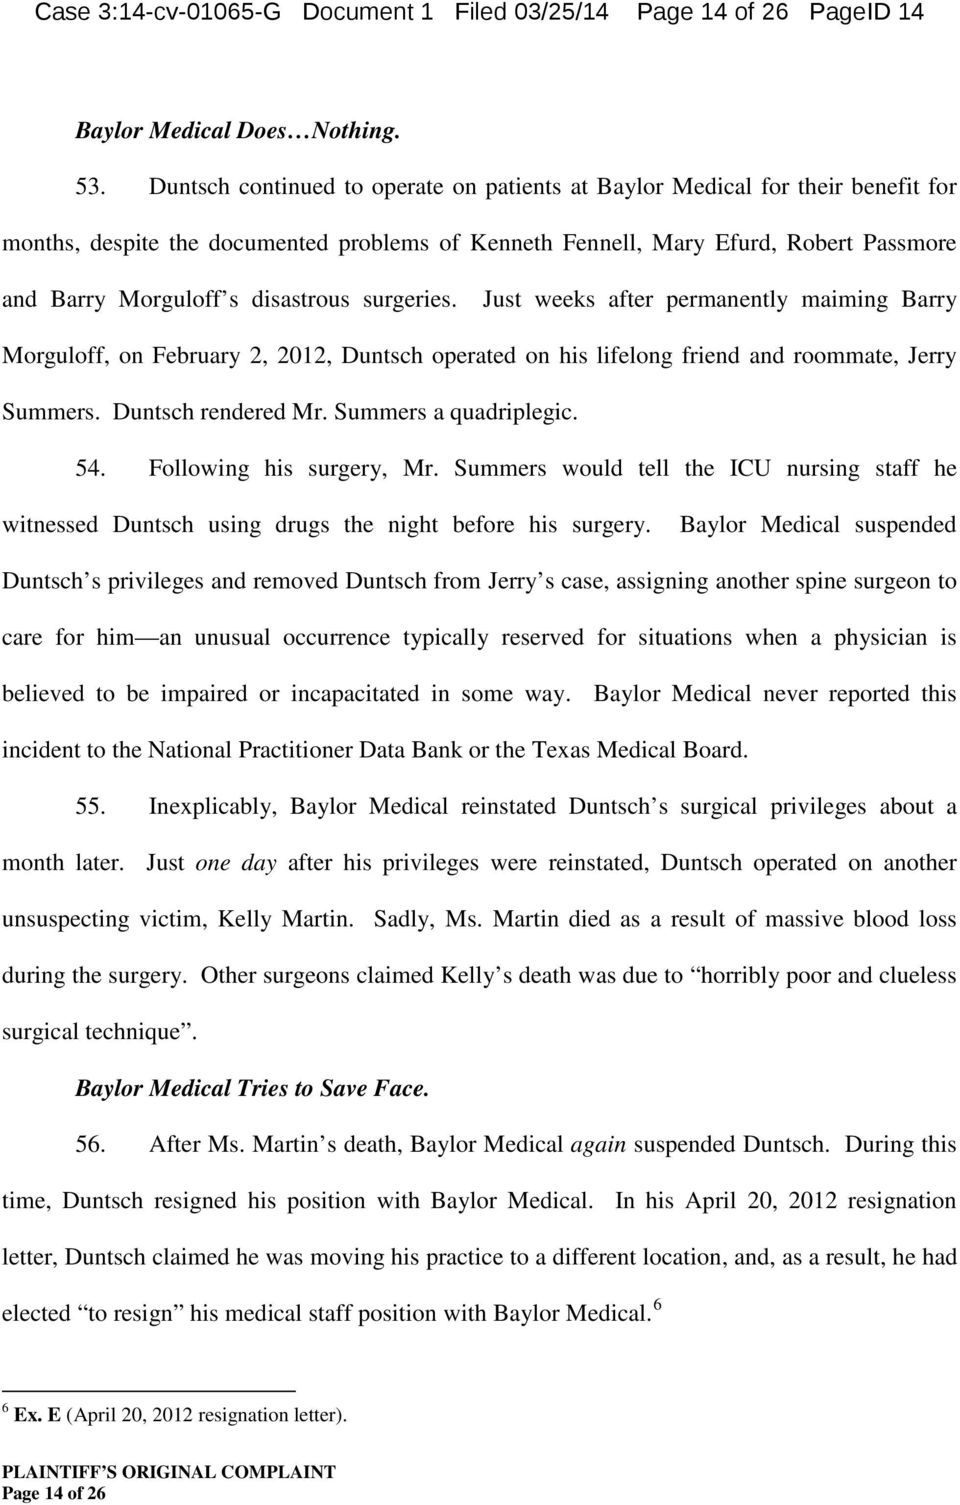 disastrous surgeries. Just weeks after permanently maiming Barry Morguloff, on February 2, 2012, Duntsch operated on his lifelong friend and roommate, Jerry Summers. Duntsch rendered Mr.